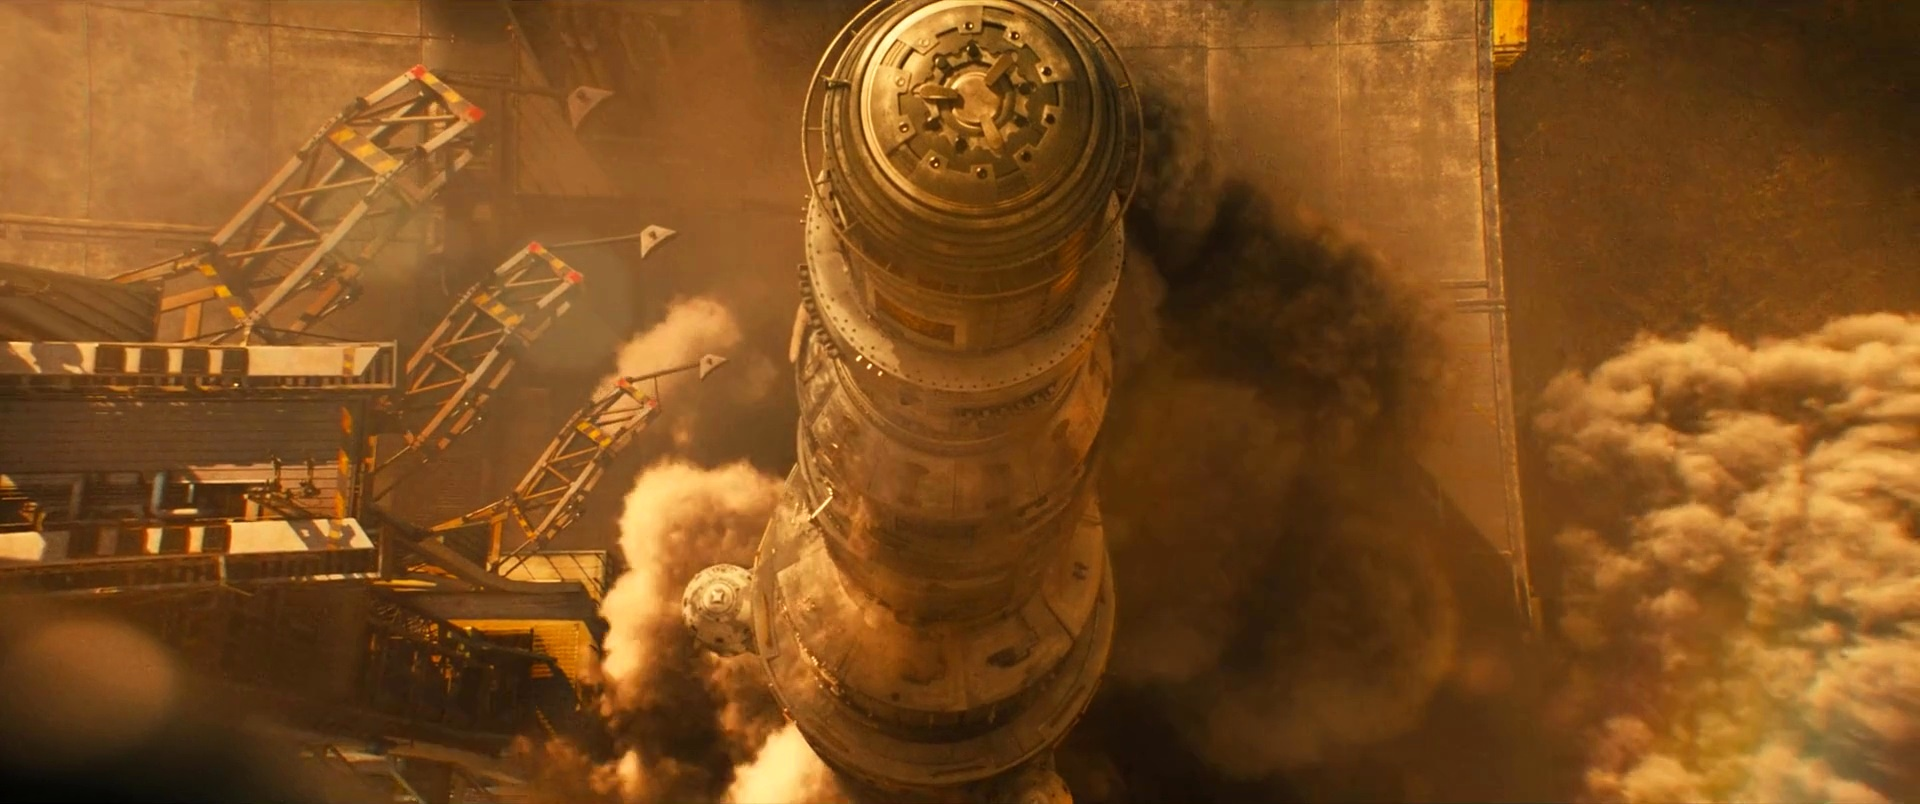 Rocket launch from Mars - image from Ad Astra movie.jpg